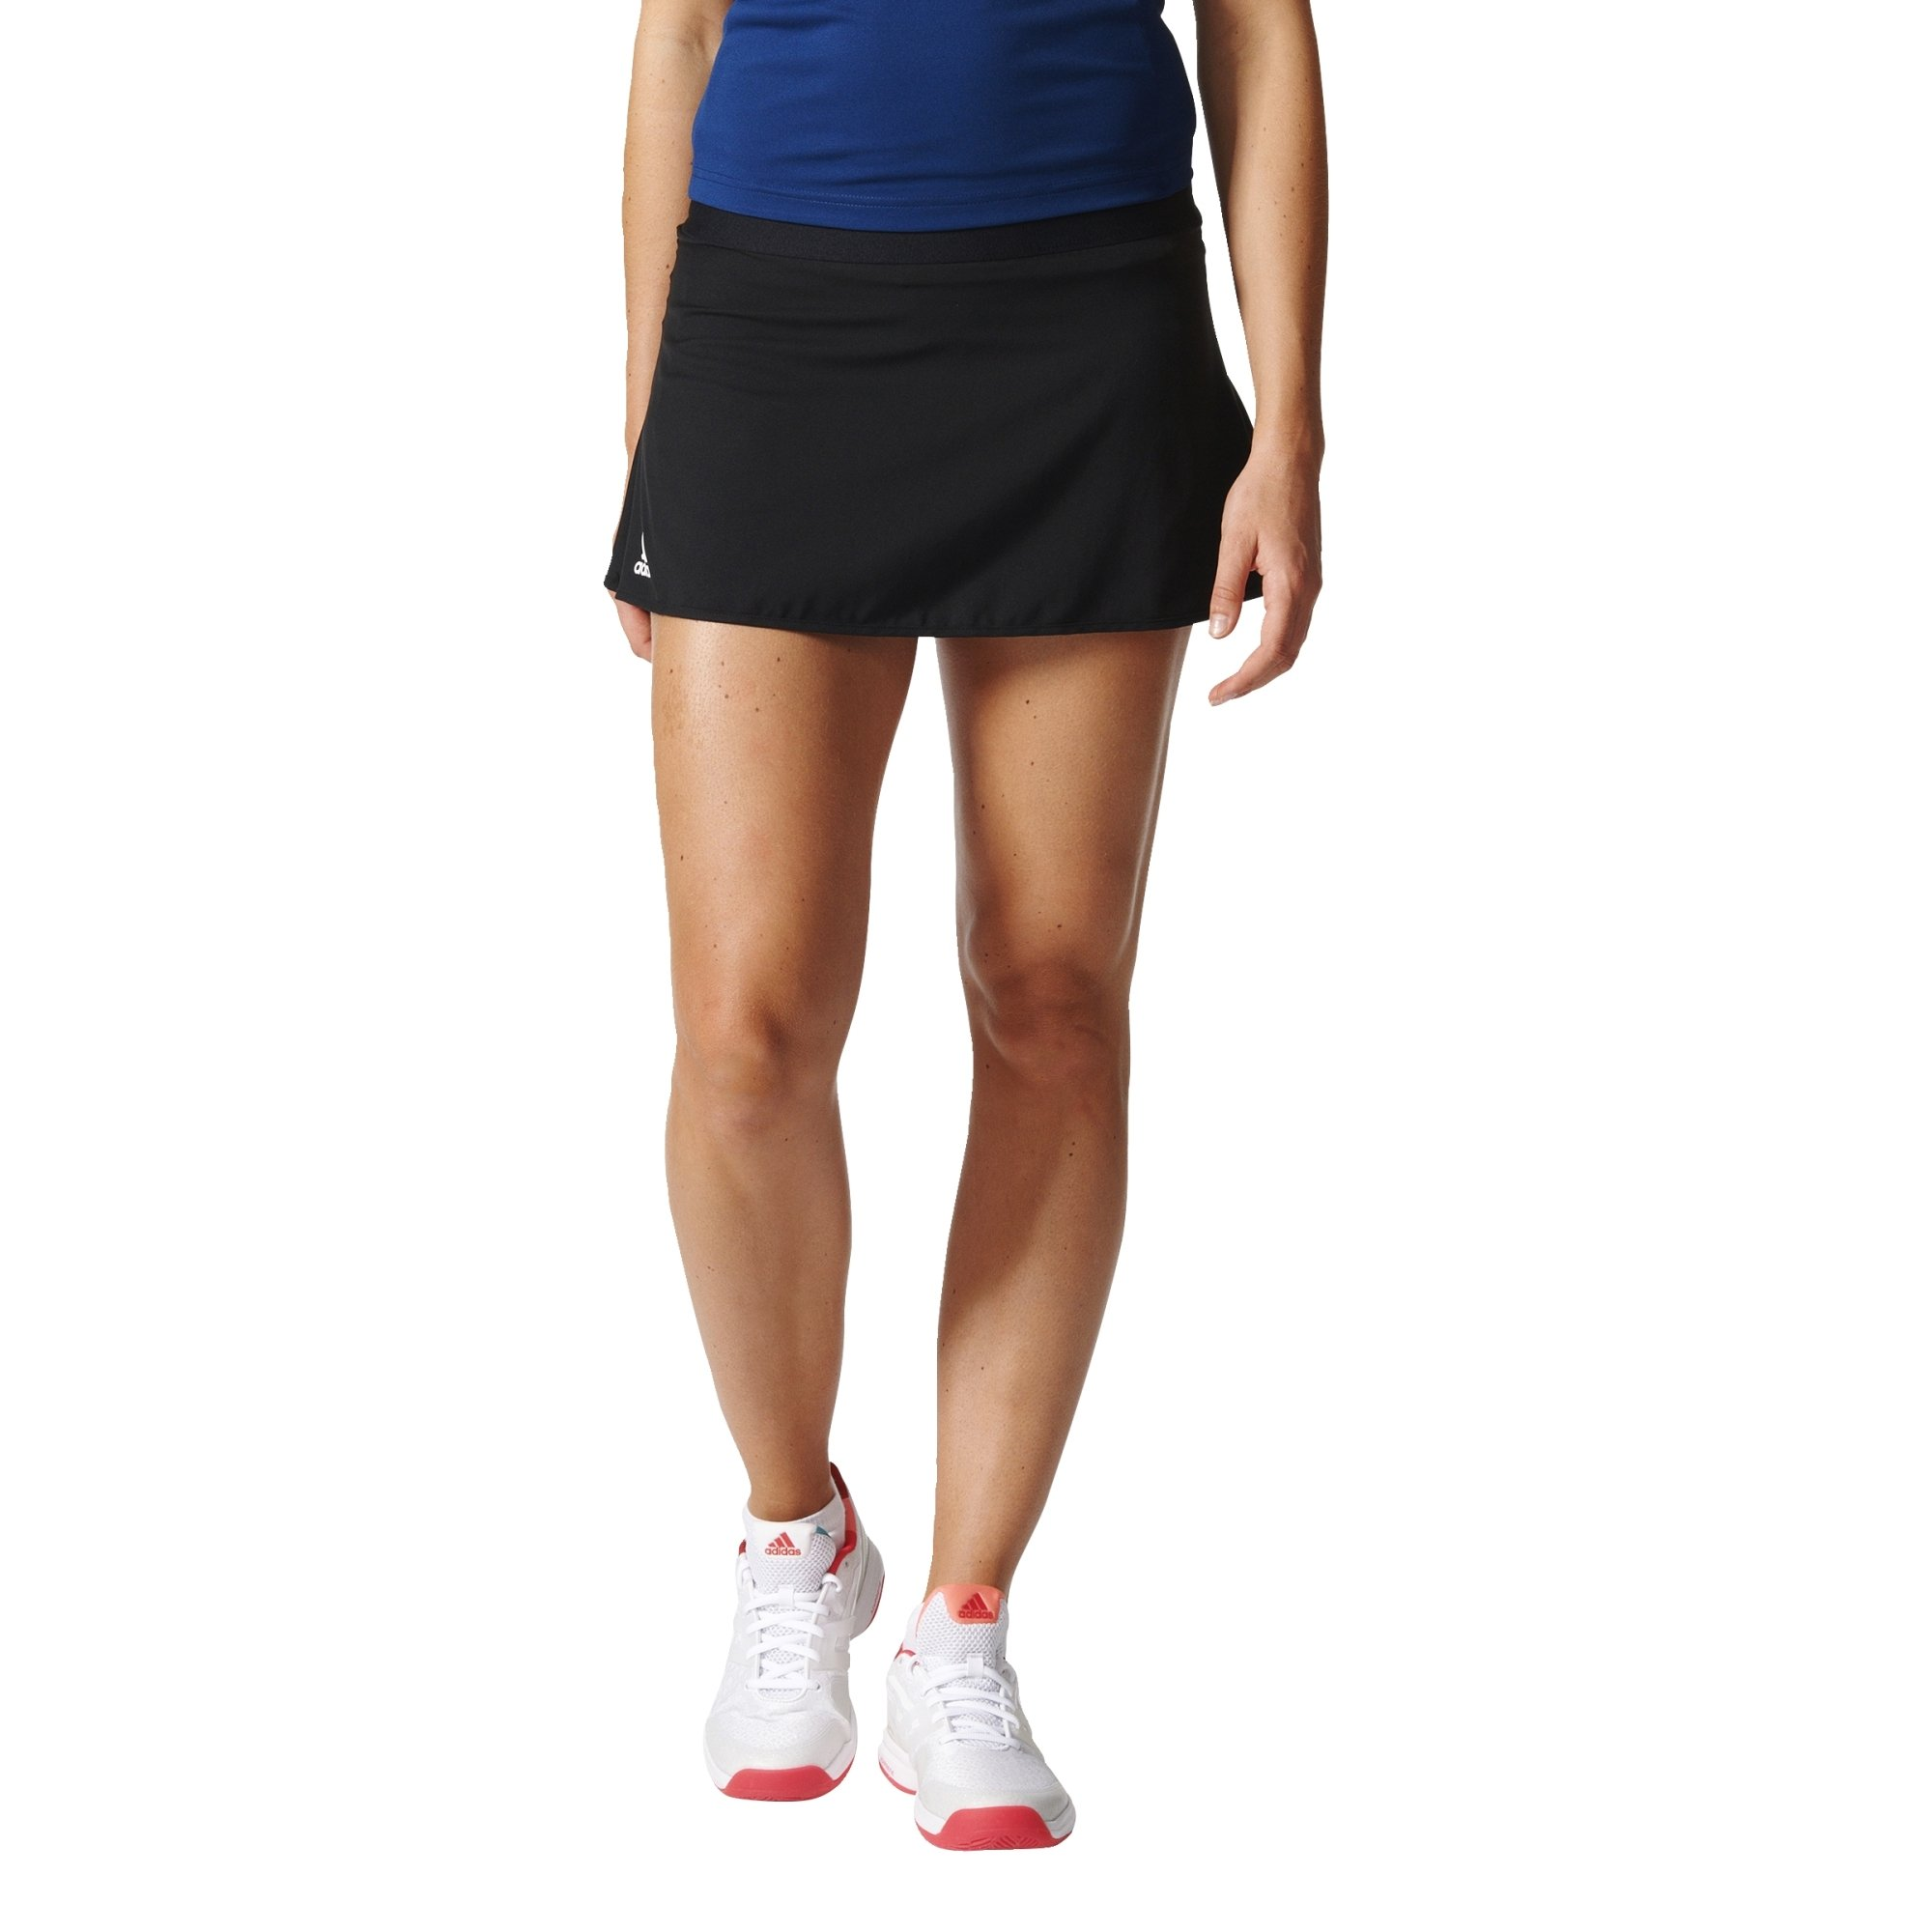 adidas Women's Tennis Club Skirt, Black, Large